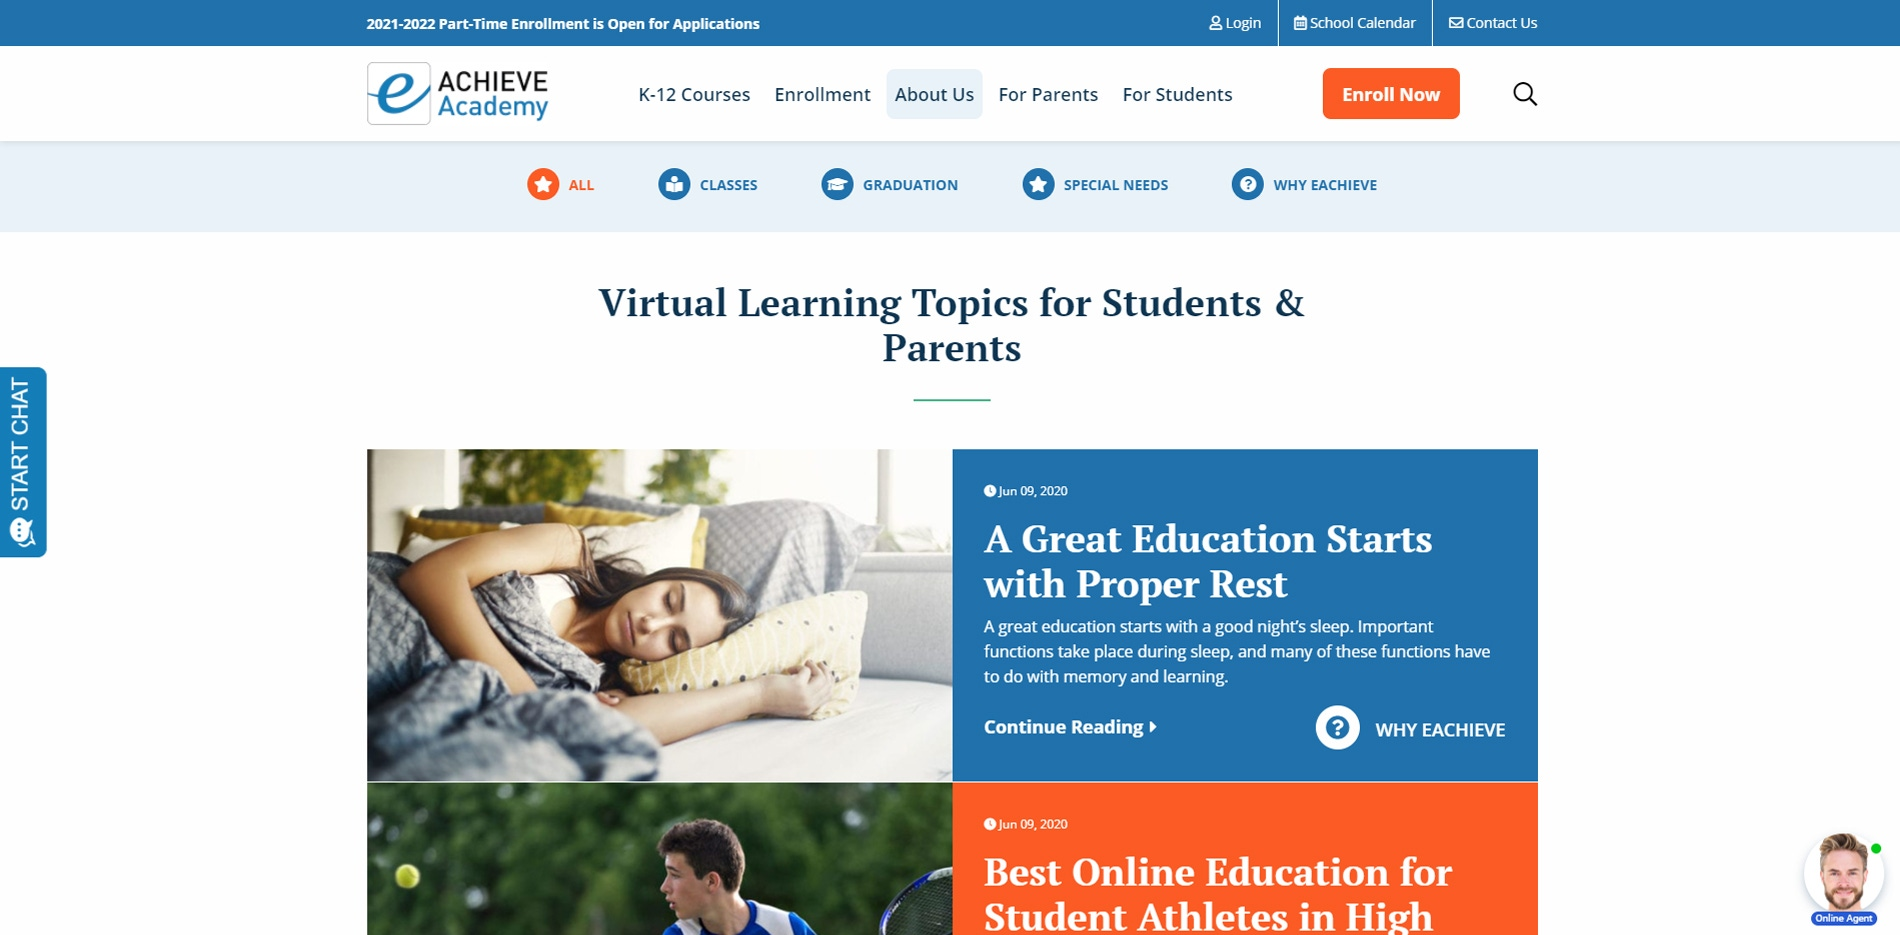 eAchieve website About us page